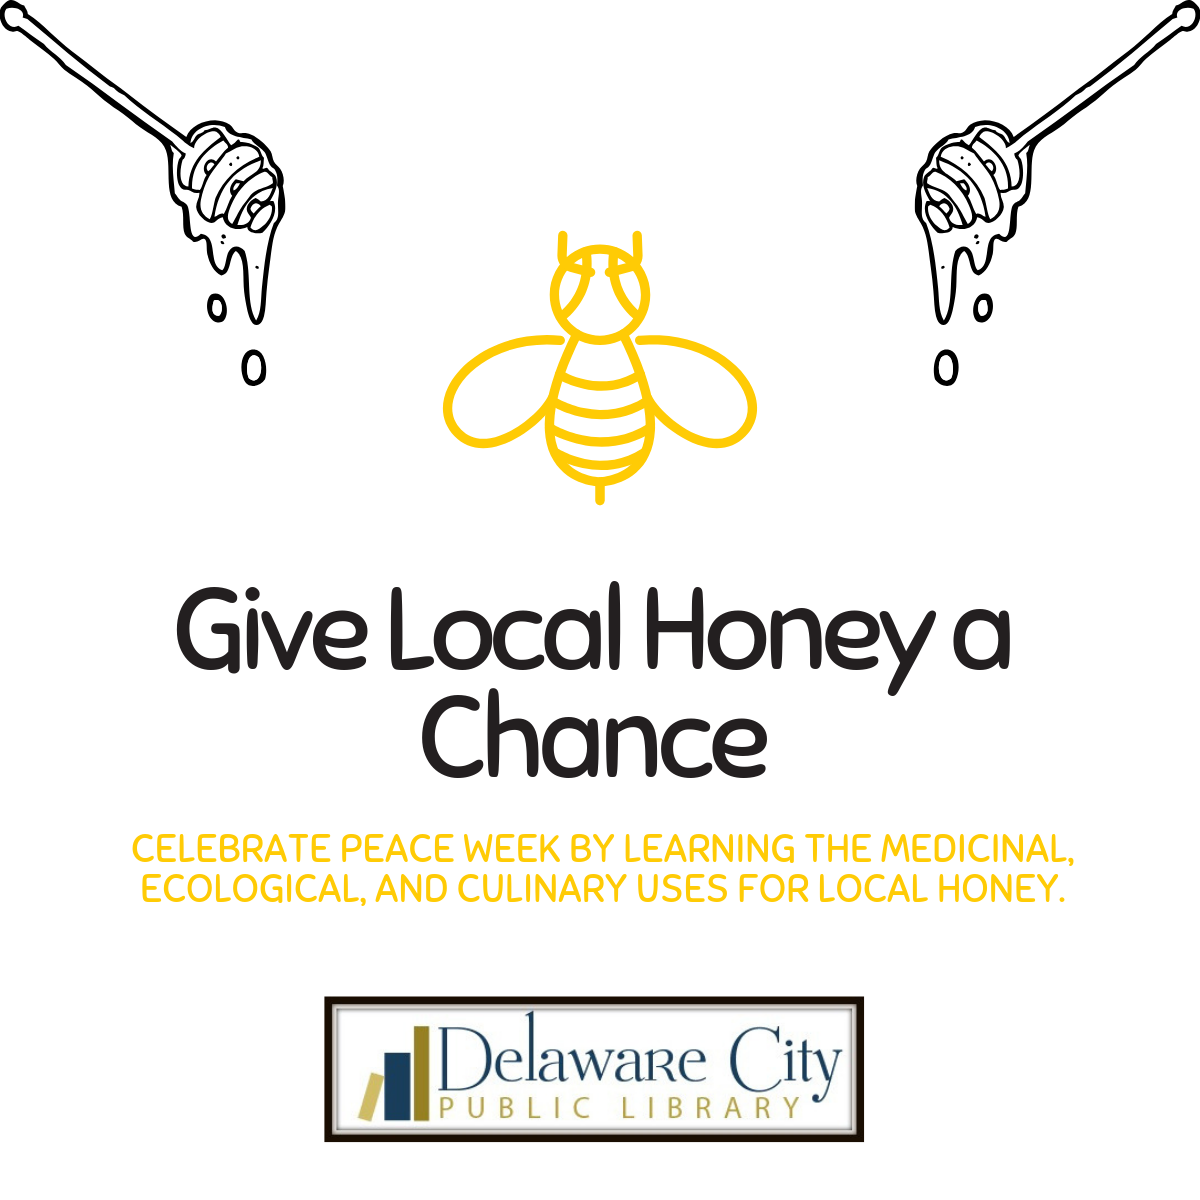 Give Local Honey a Chance